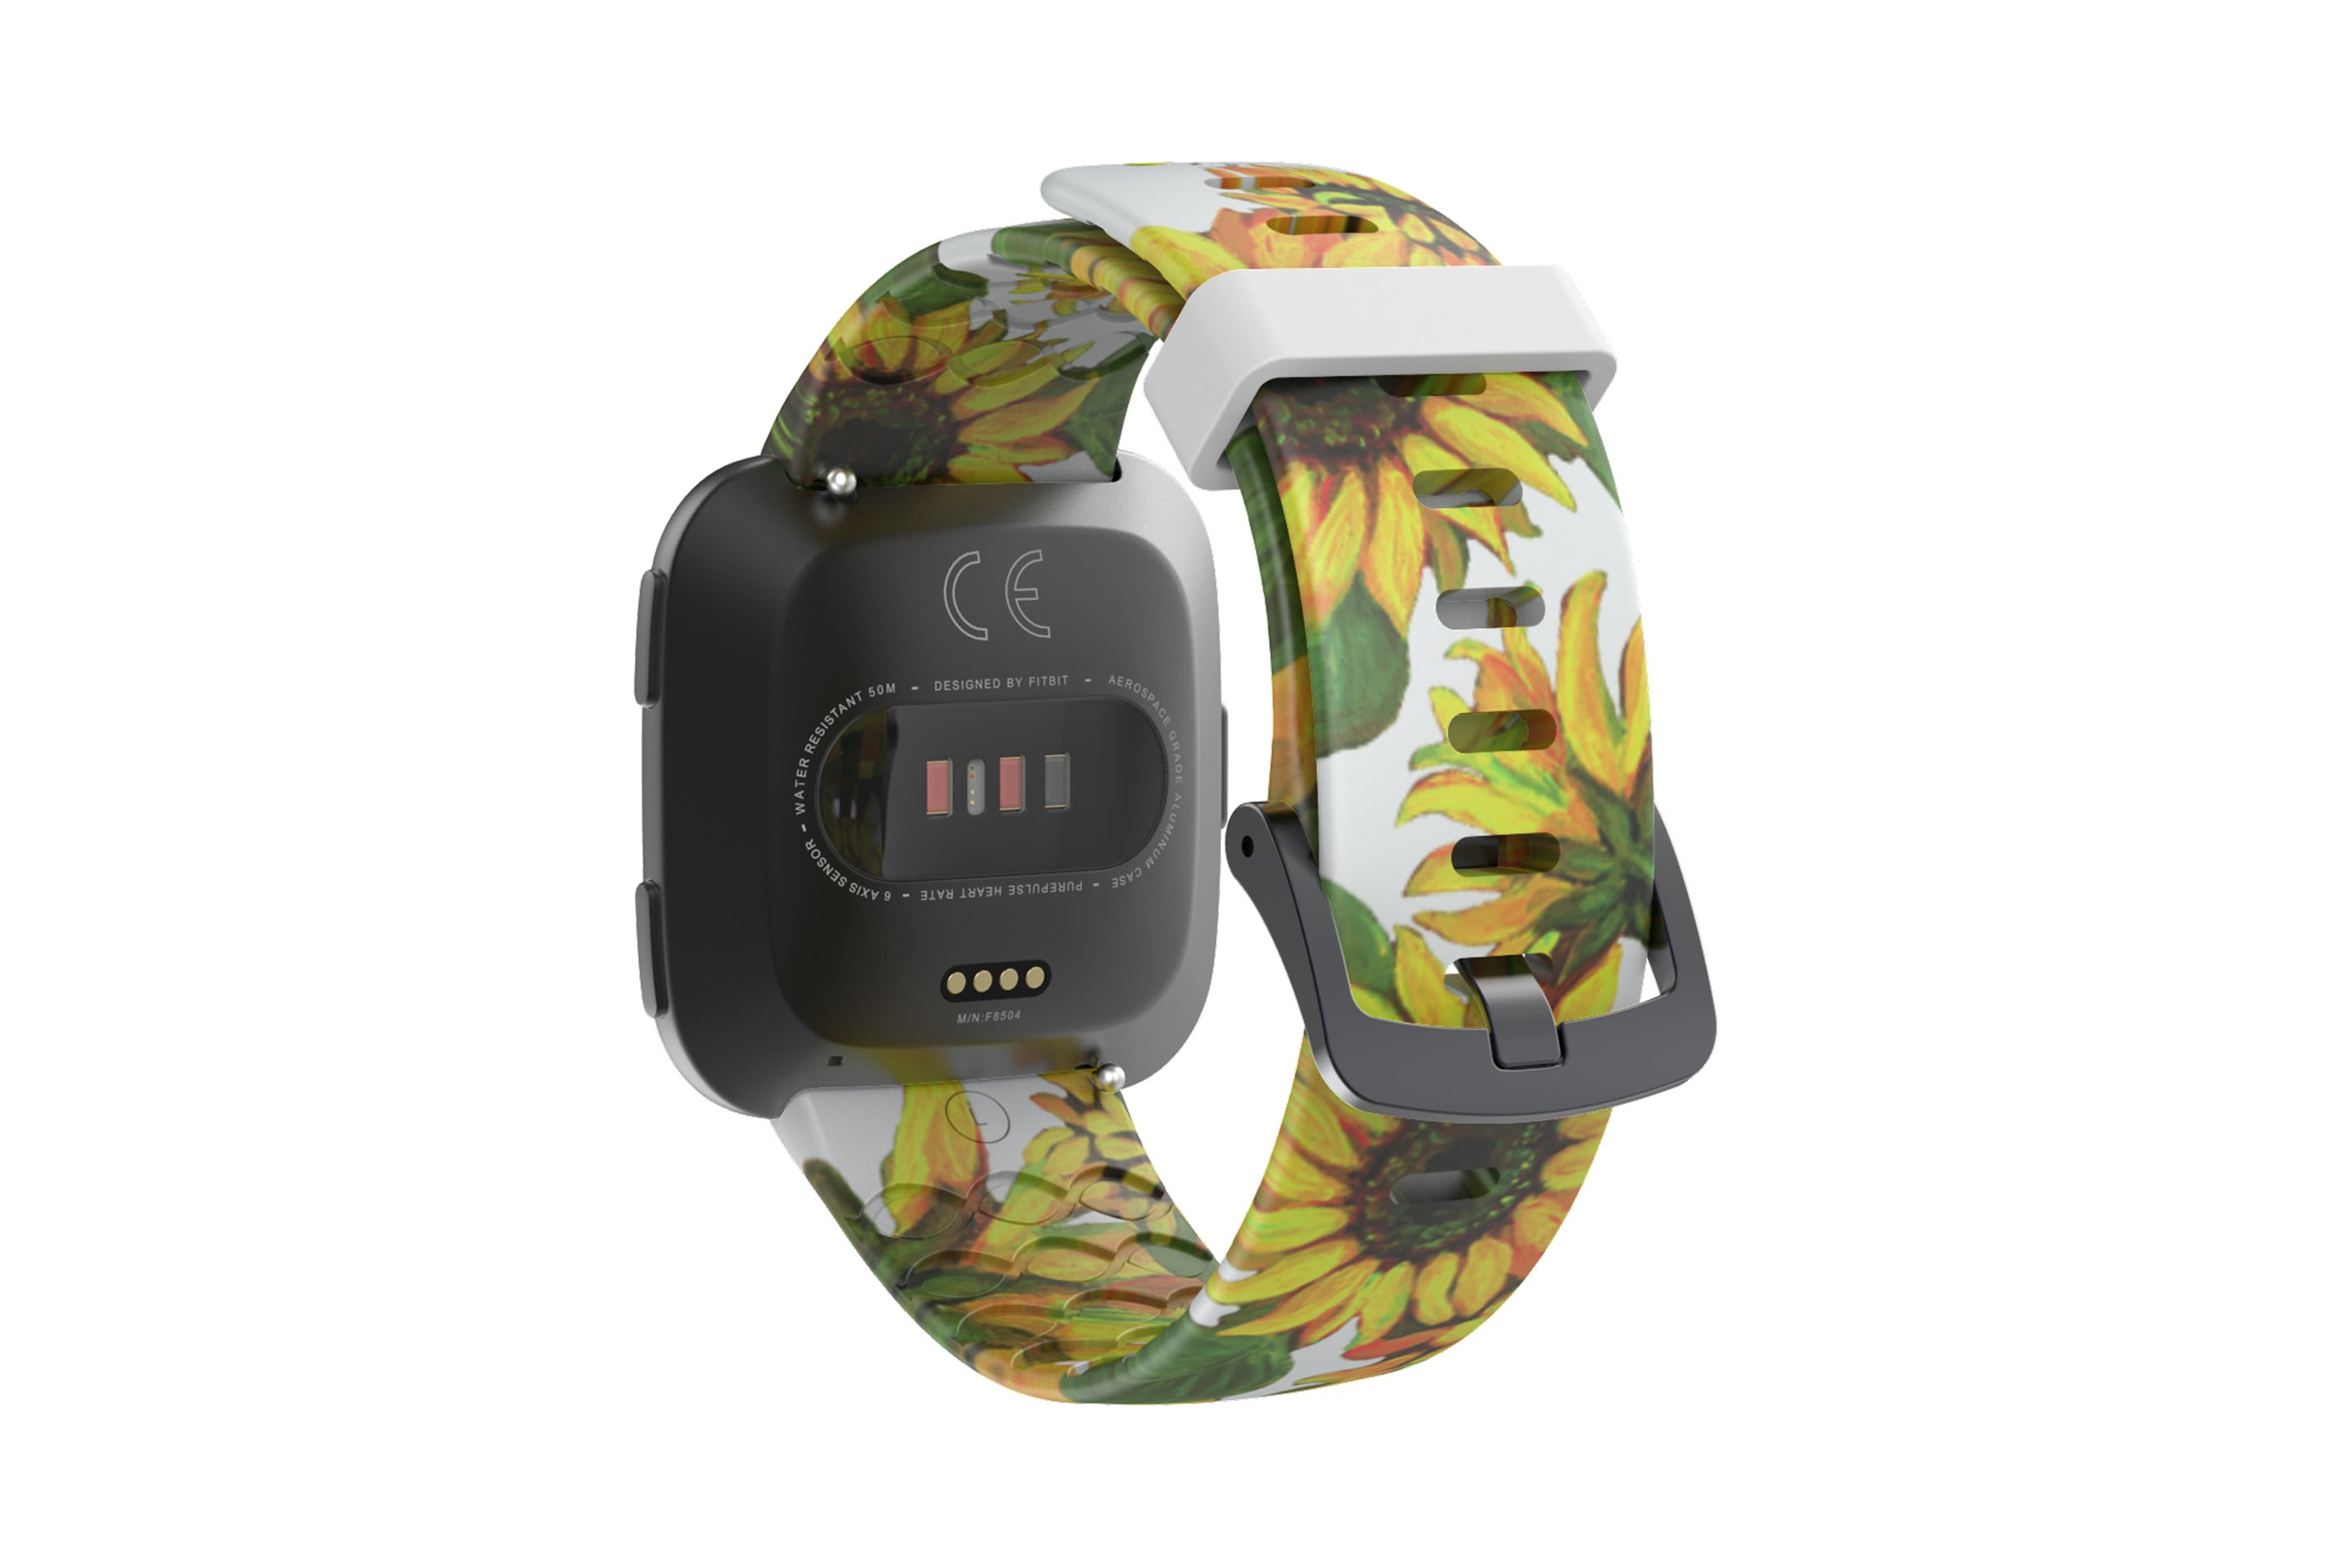 Sunflower fitbit versa watch band with gray hardware viewed from top down